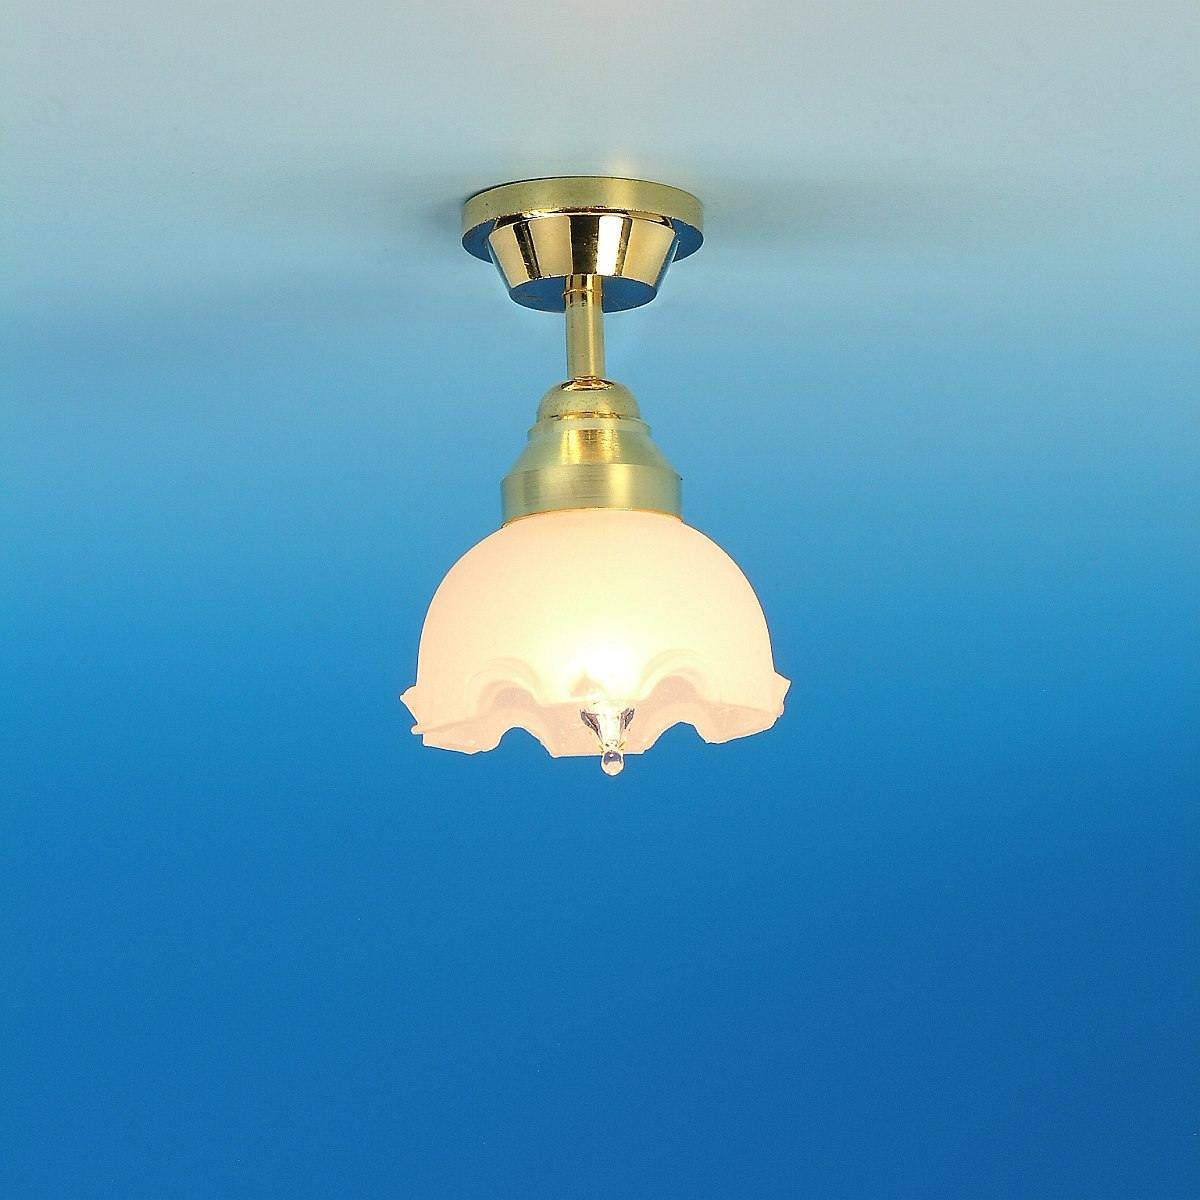 Ceiling Lamp With Cover Minilux 25730